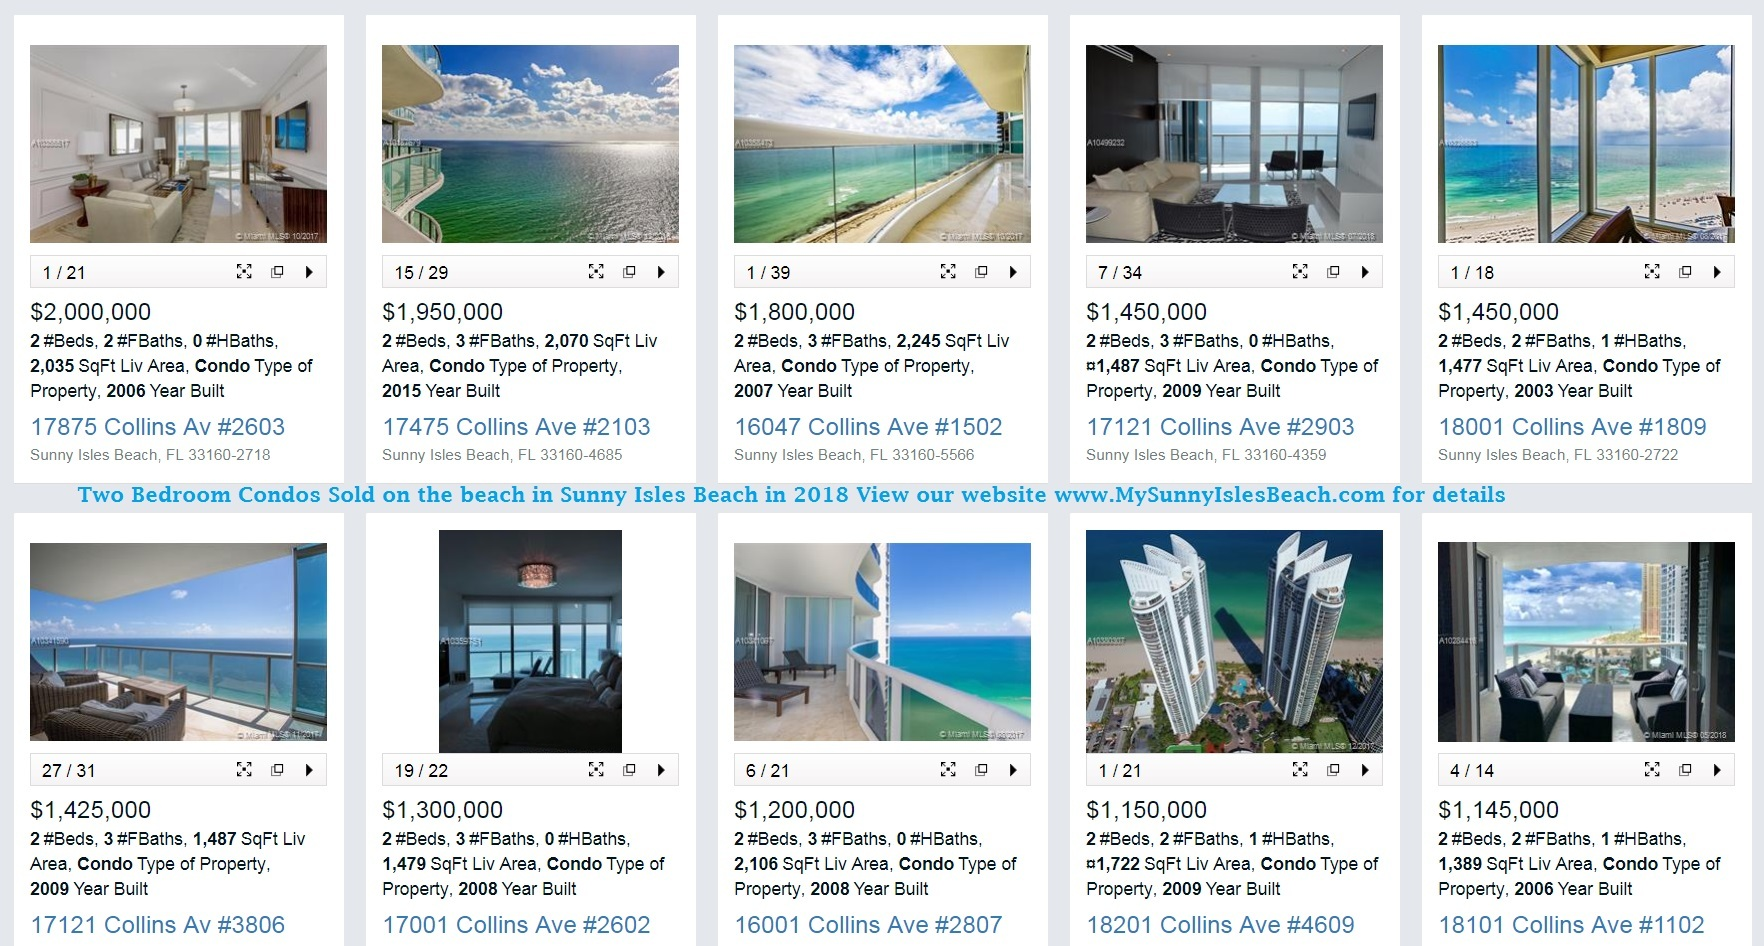 Two Bedroom Condos Sold on the beach in Sunny Isles Beach in 2018 View our website for details Evelina Tsigelnitskaya SIB Realty